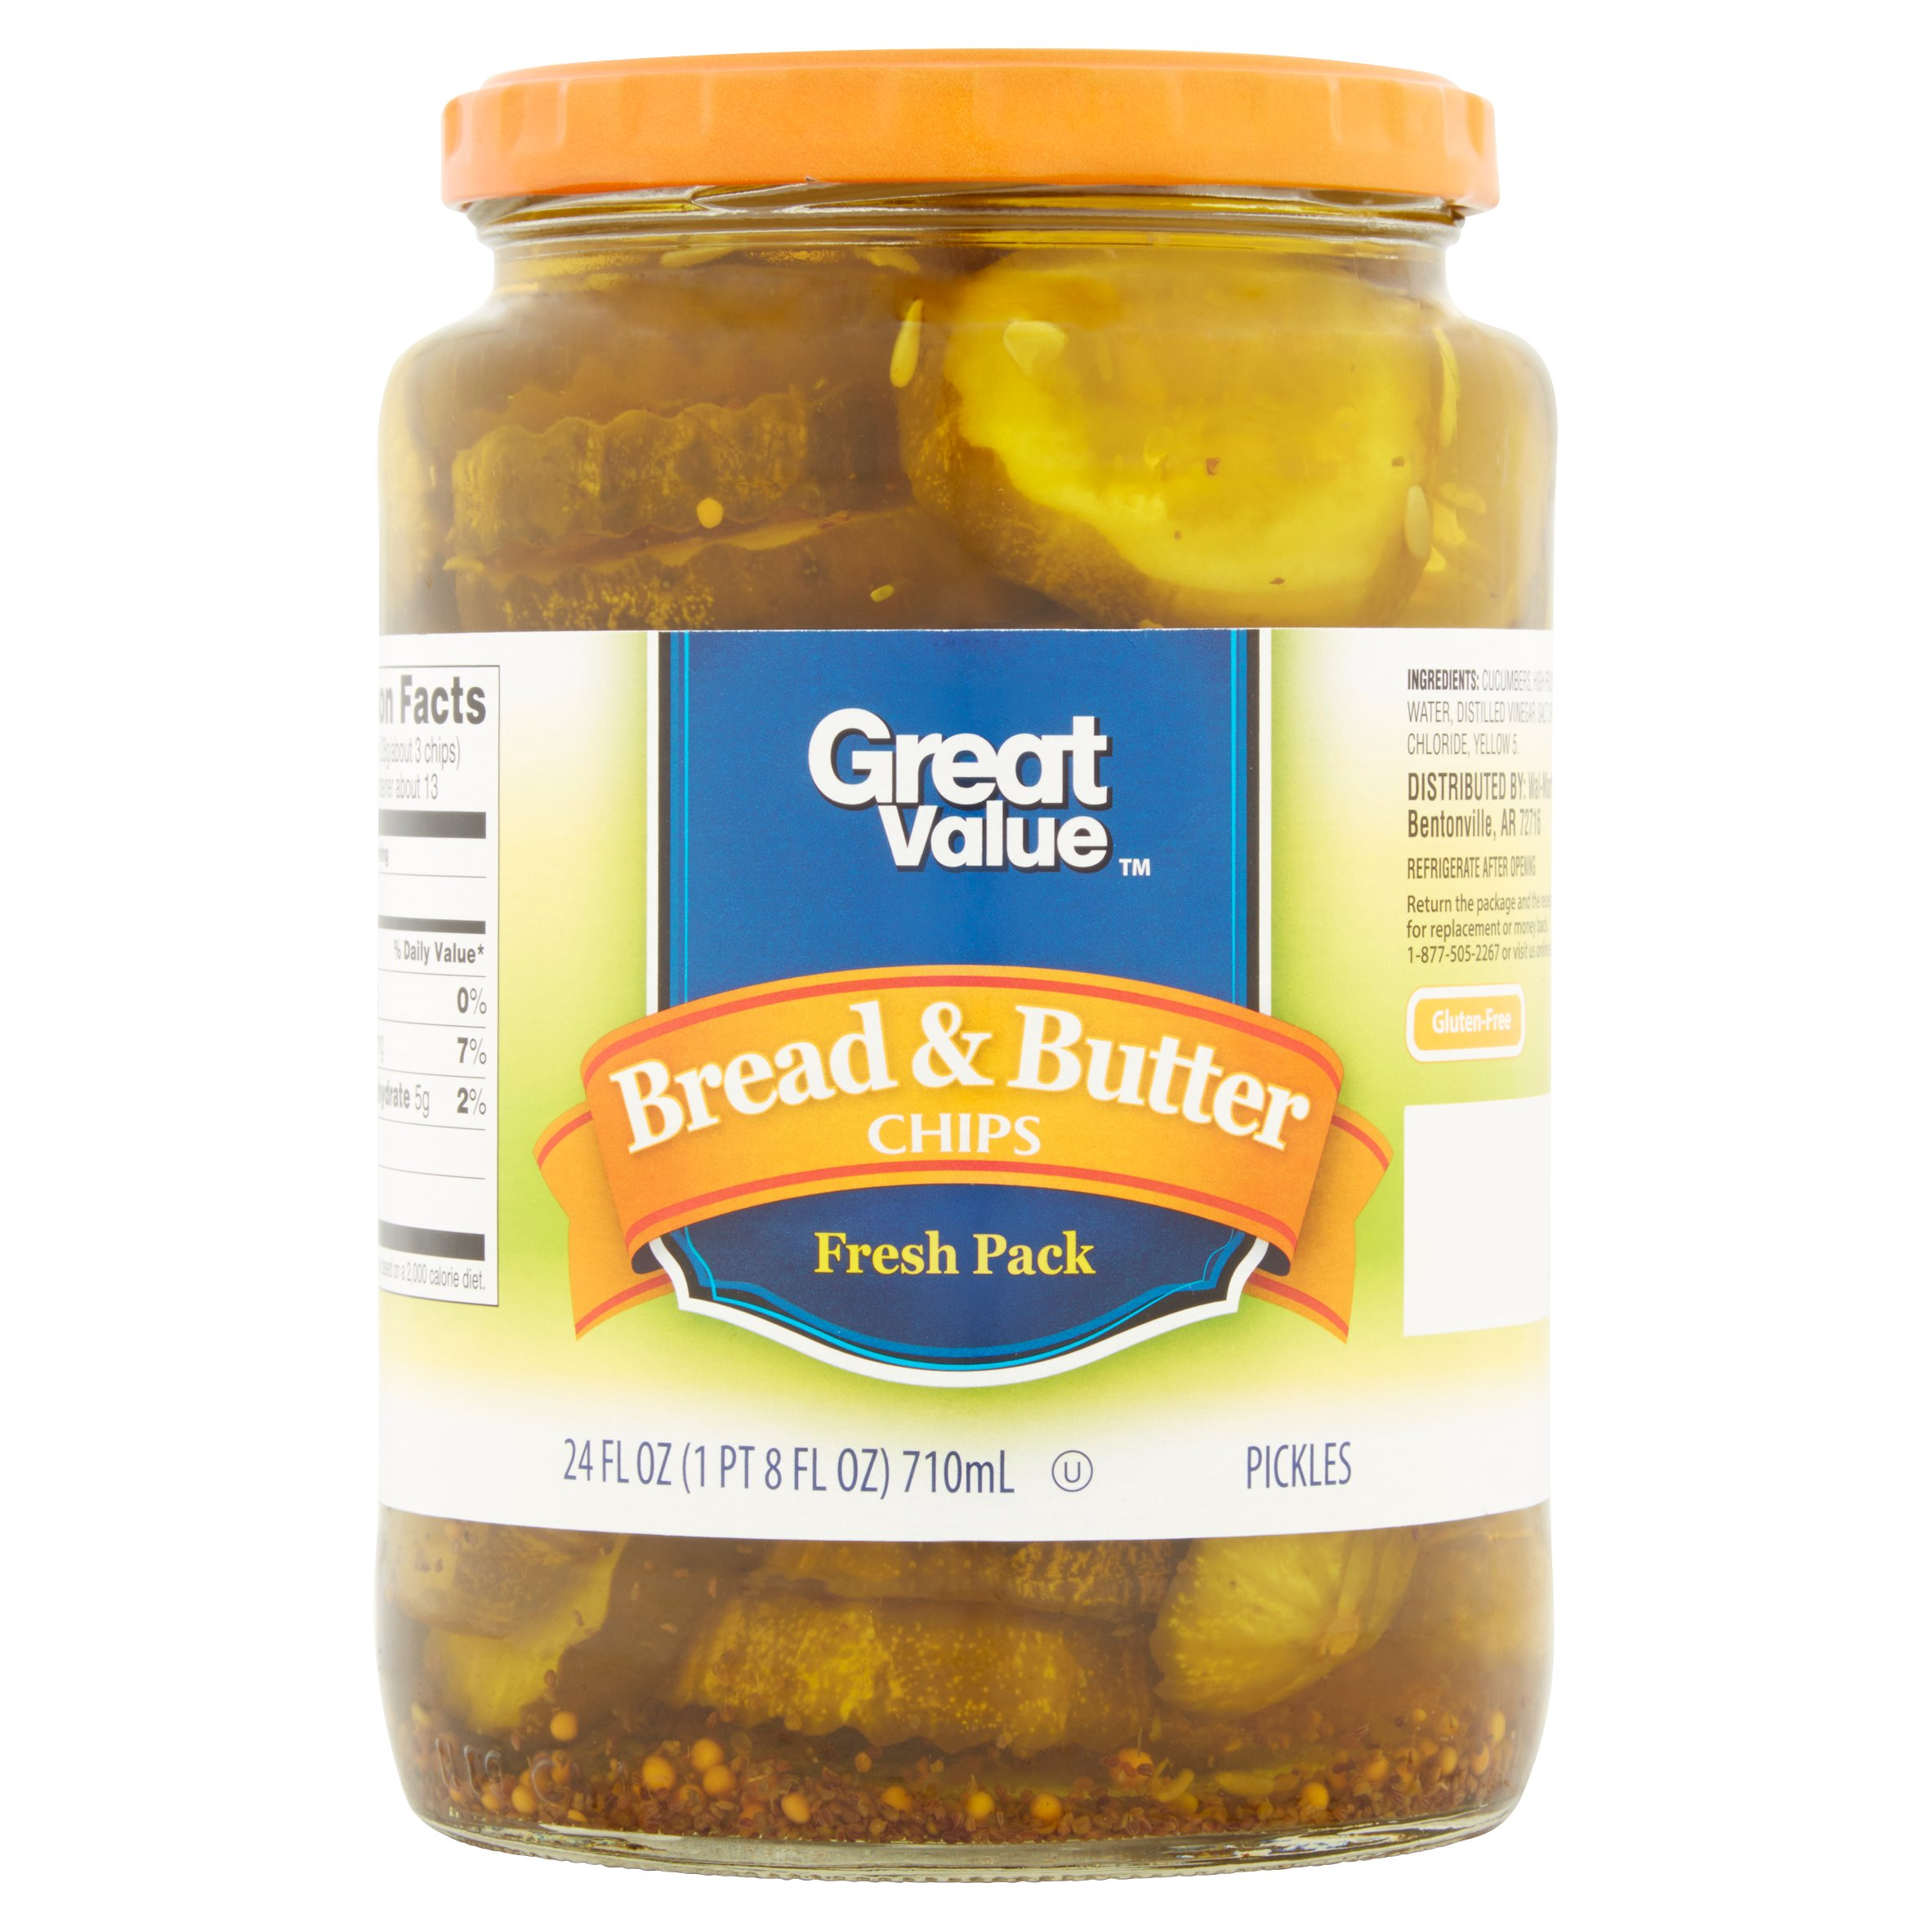 Great Value Bread & Butter Chips Pickles, 24 oz